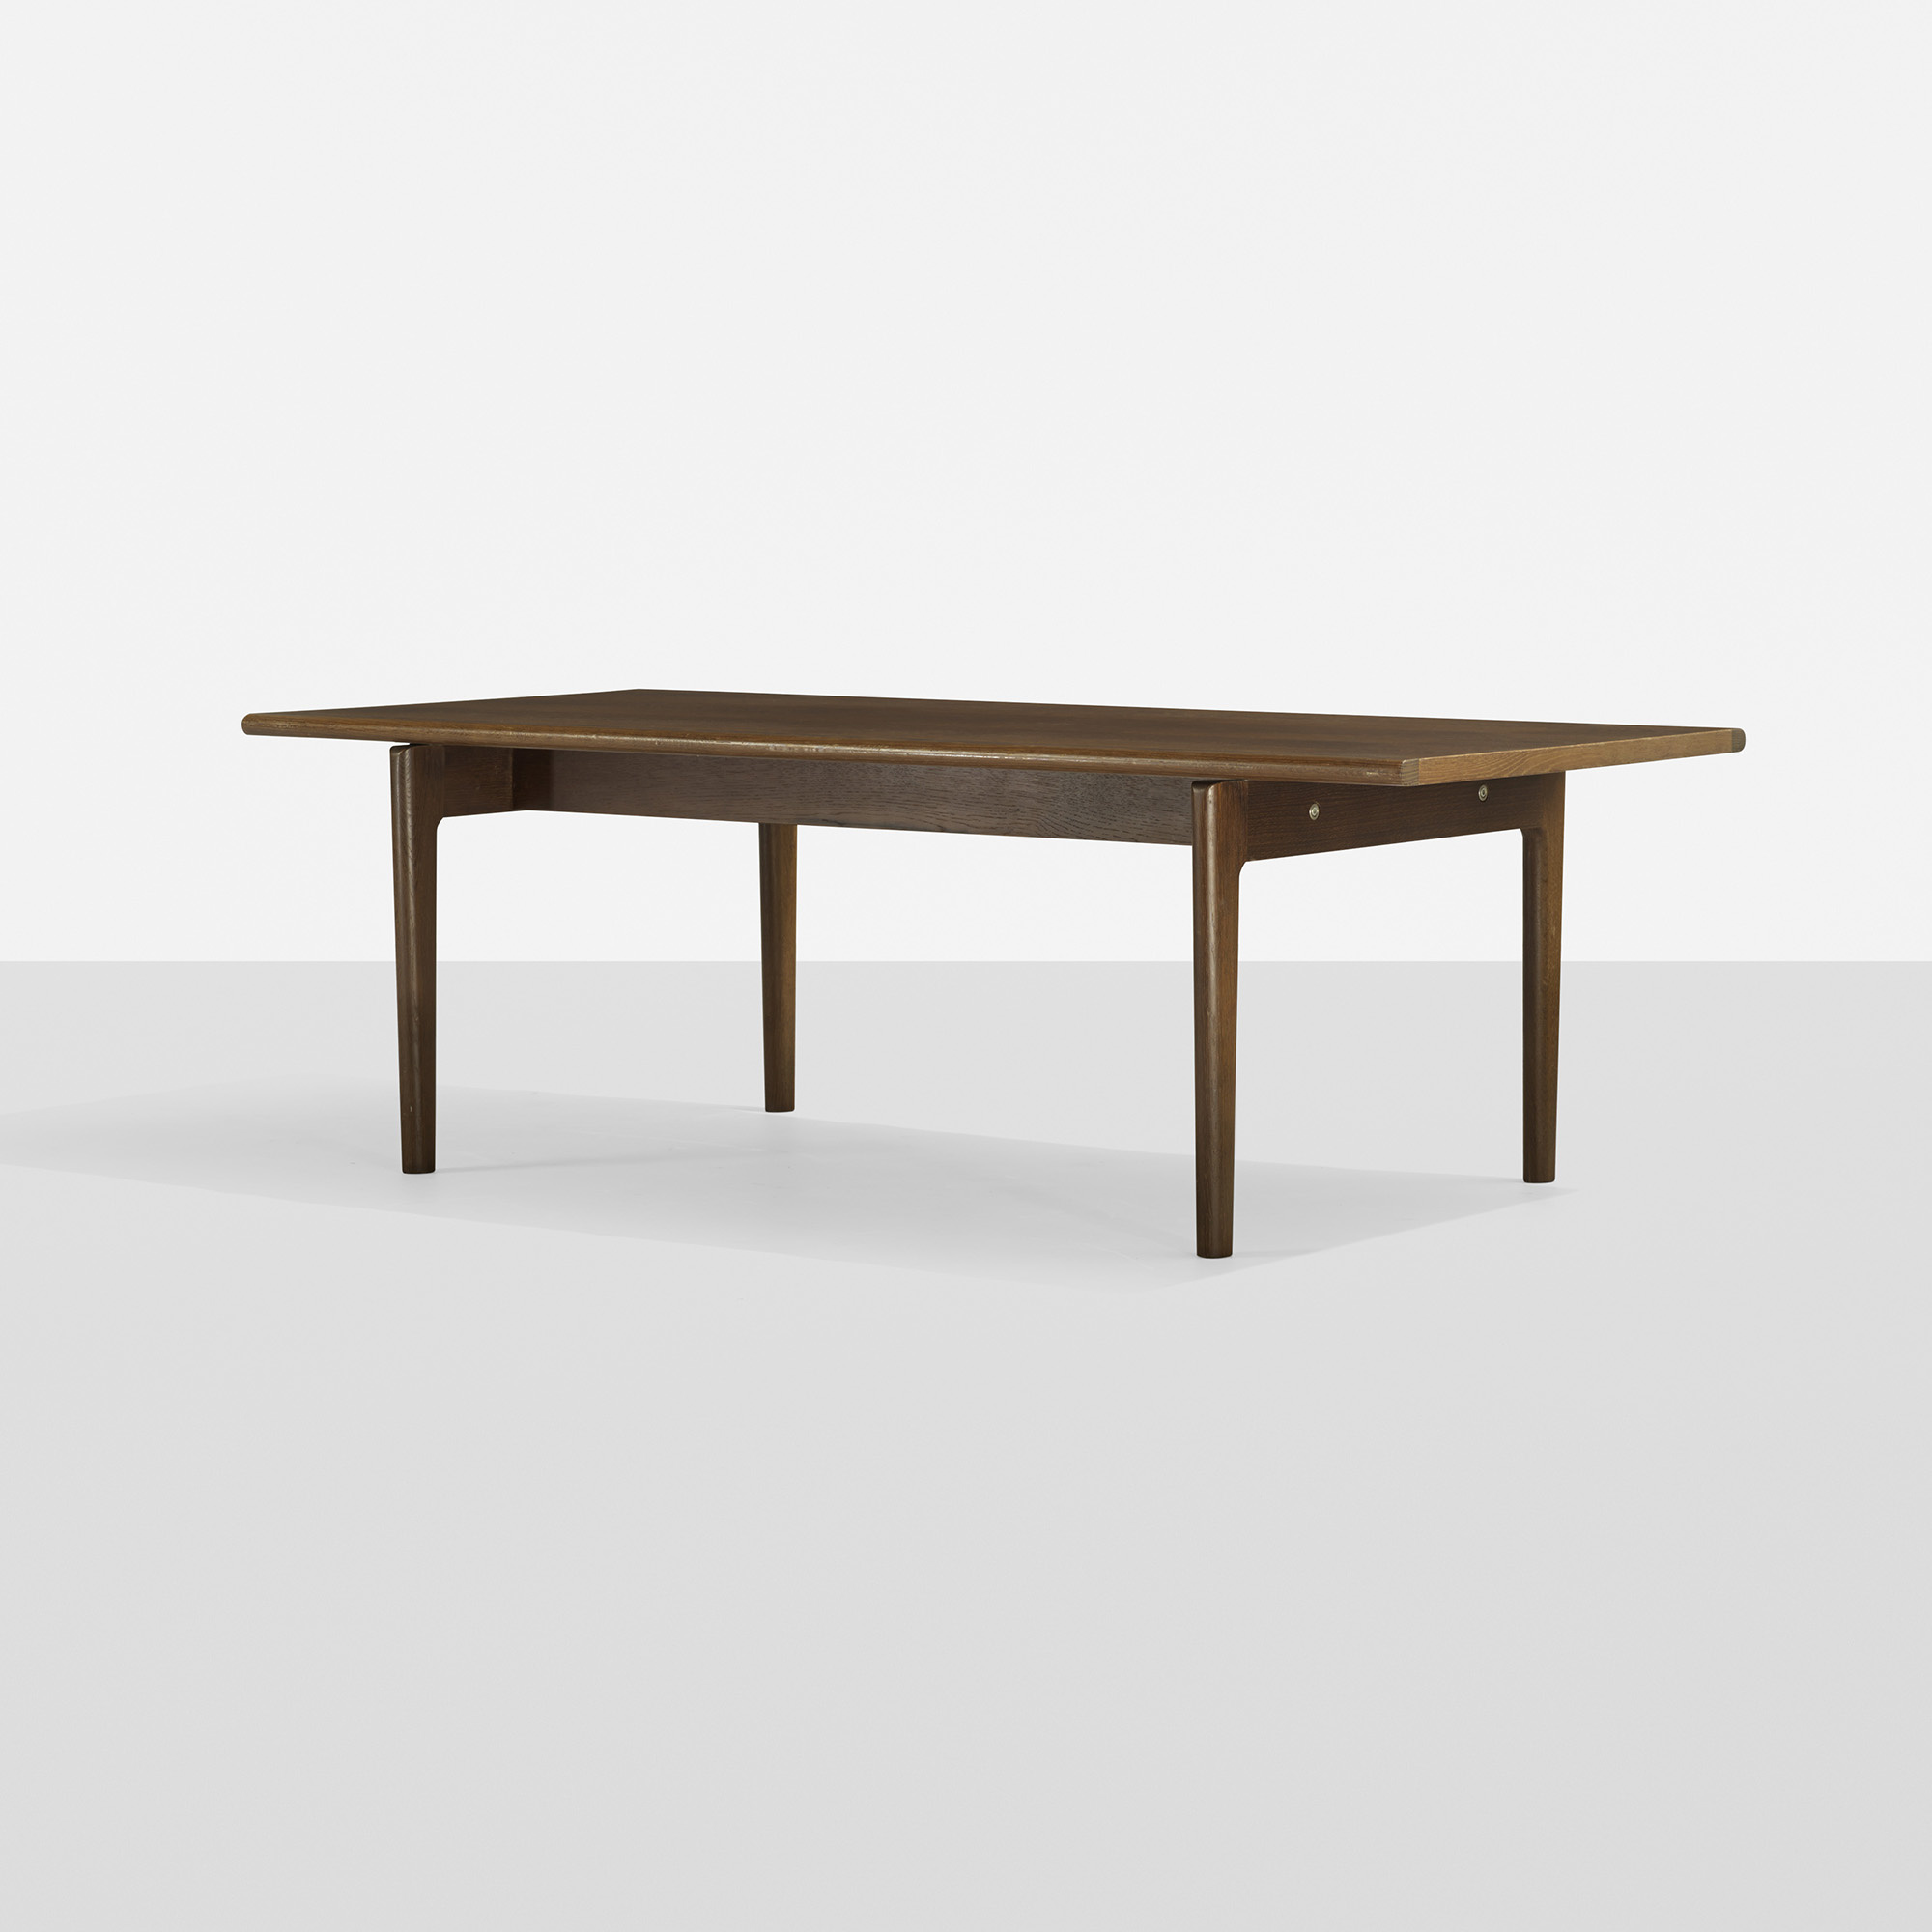 215 Hans J Wegner Coffee Table 1 Of 4